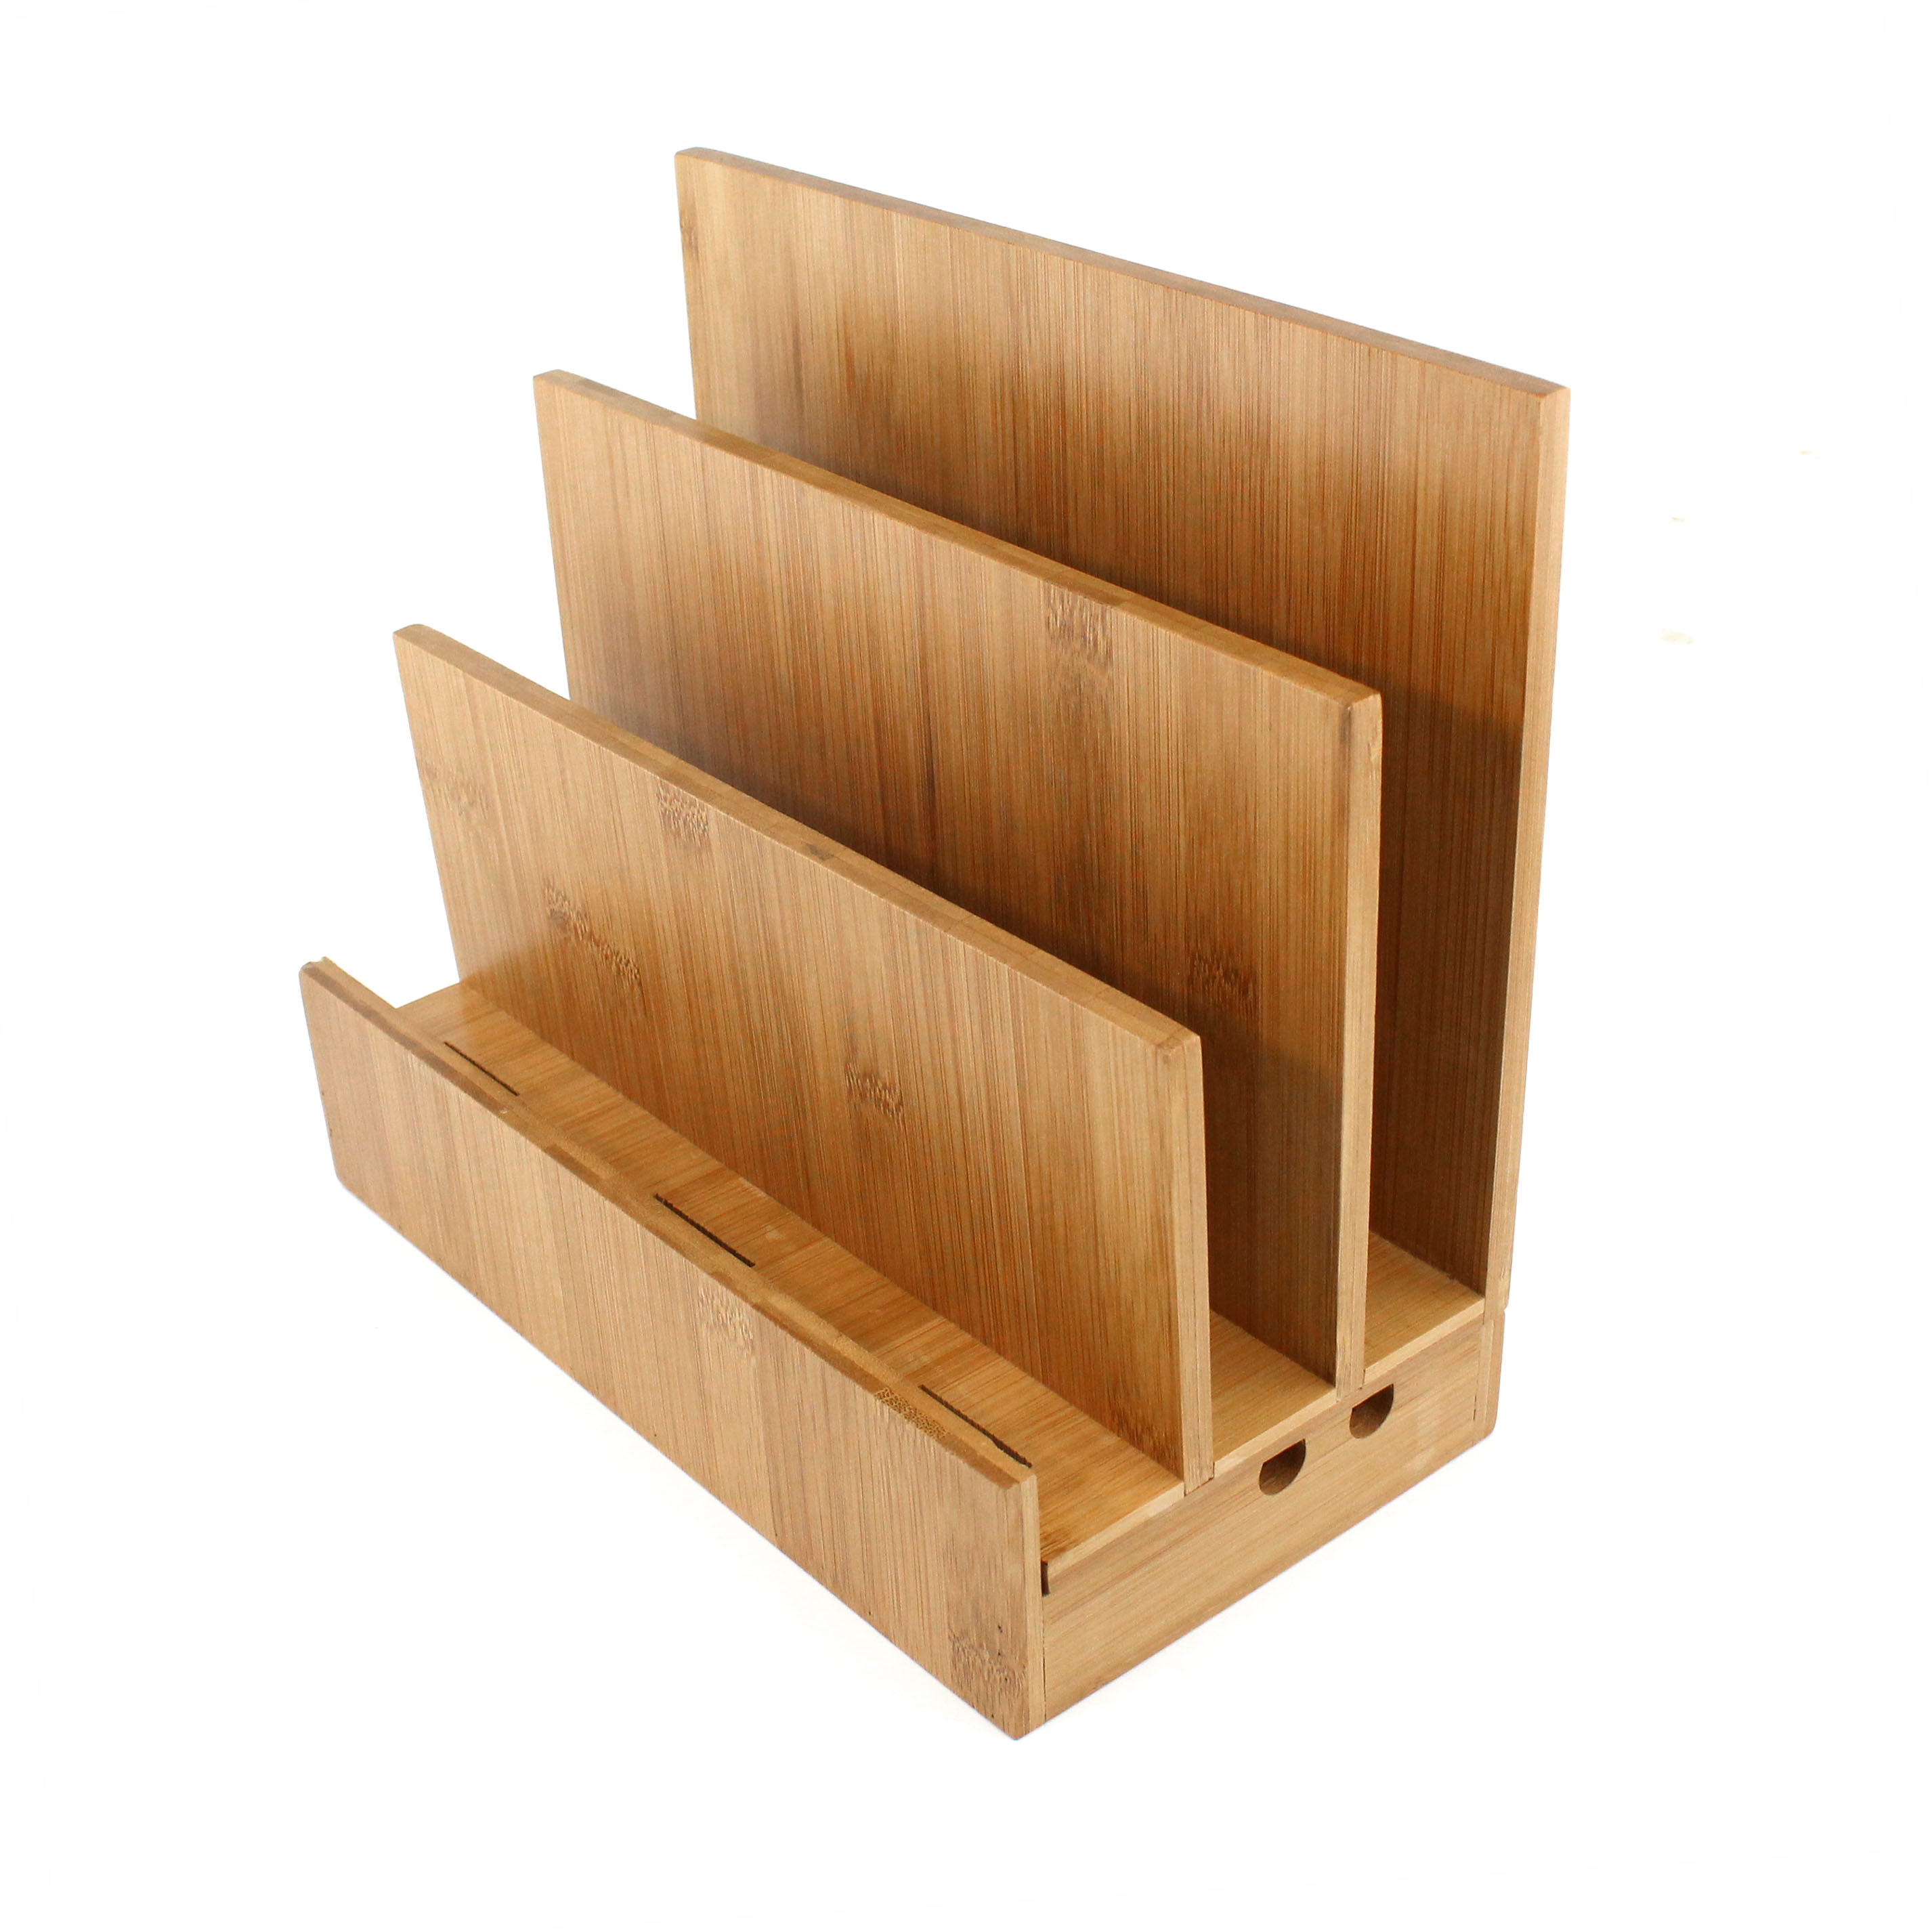 Charging Station Shelf Bamboo Ipad Charging Station Homex